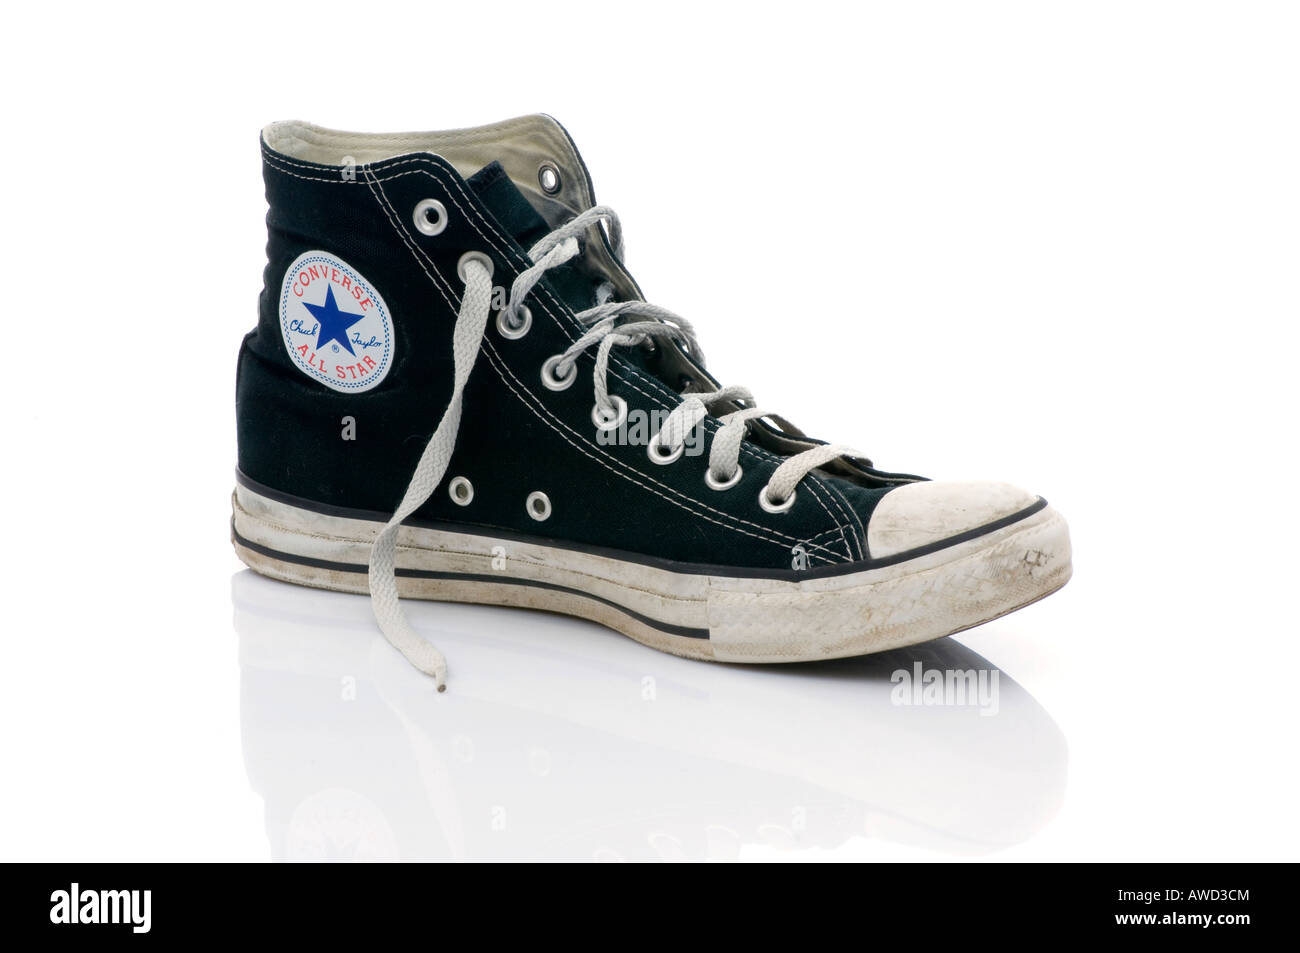 Converse Chuck Taylor All Star Classic Design From 1917 The Best